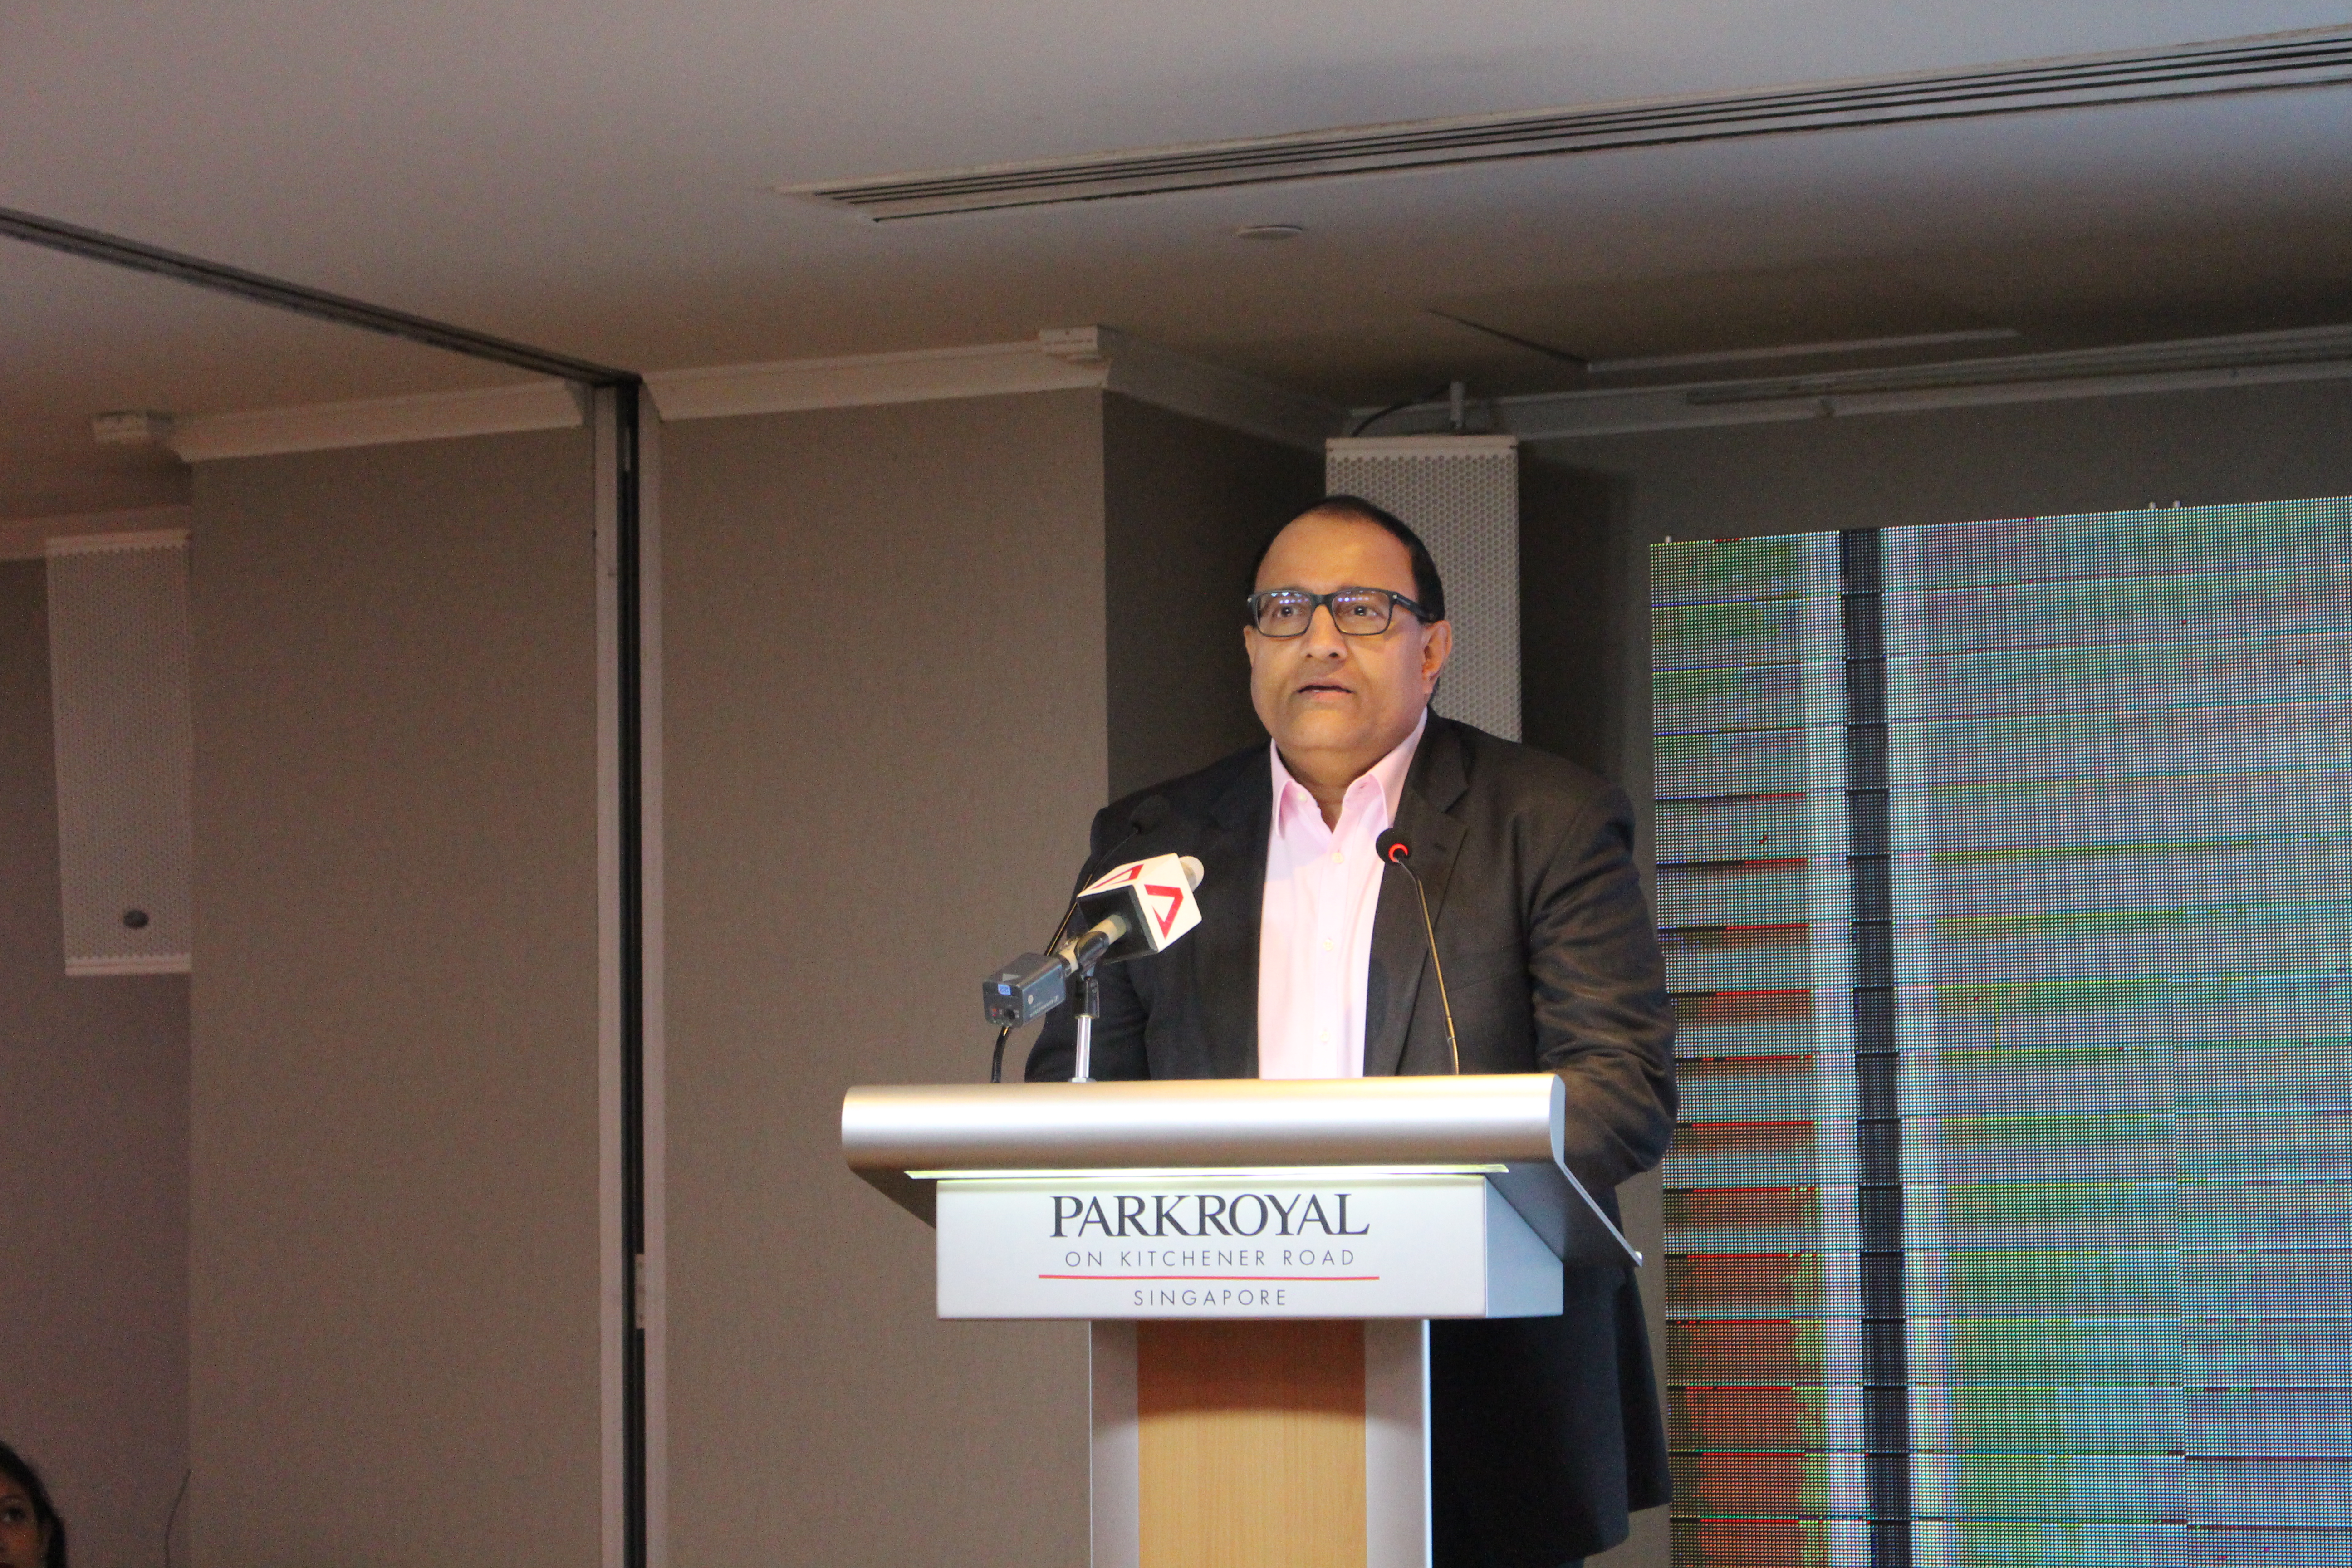 S Iswaran, Singapore's Minister for Communications and Information. Photo: Connected to India